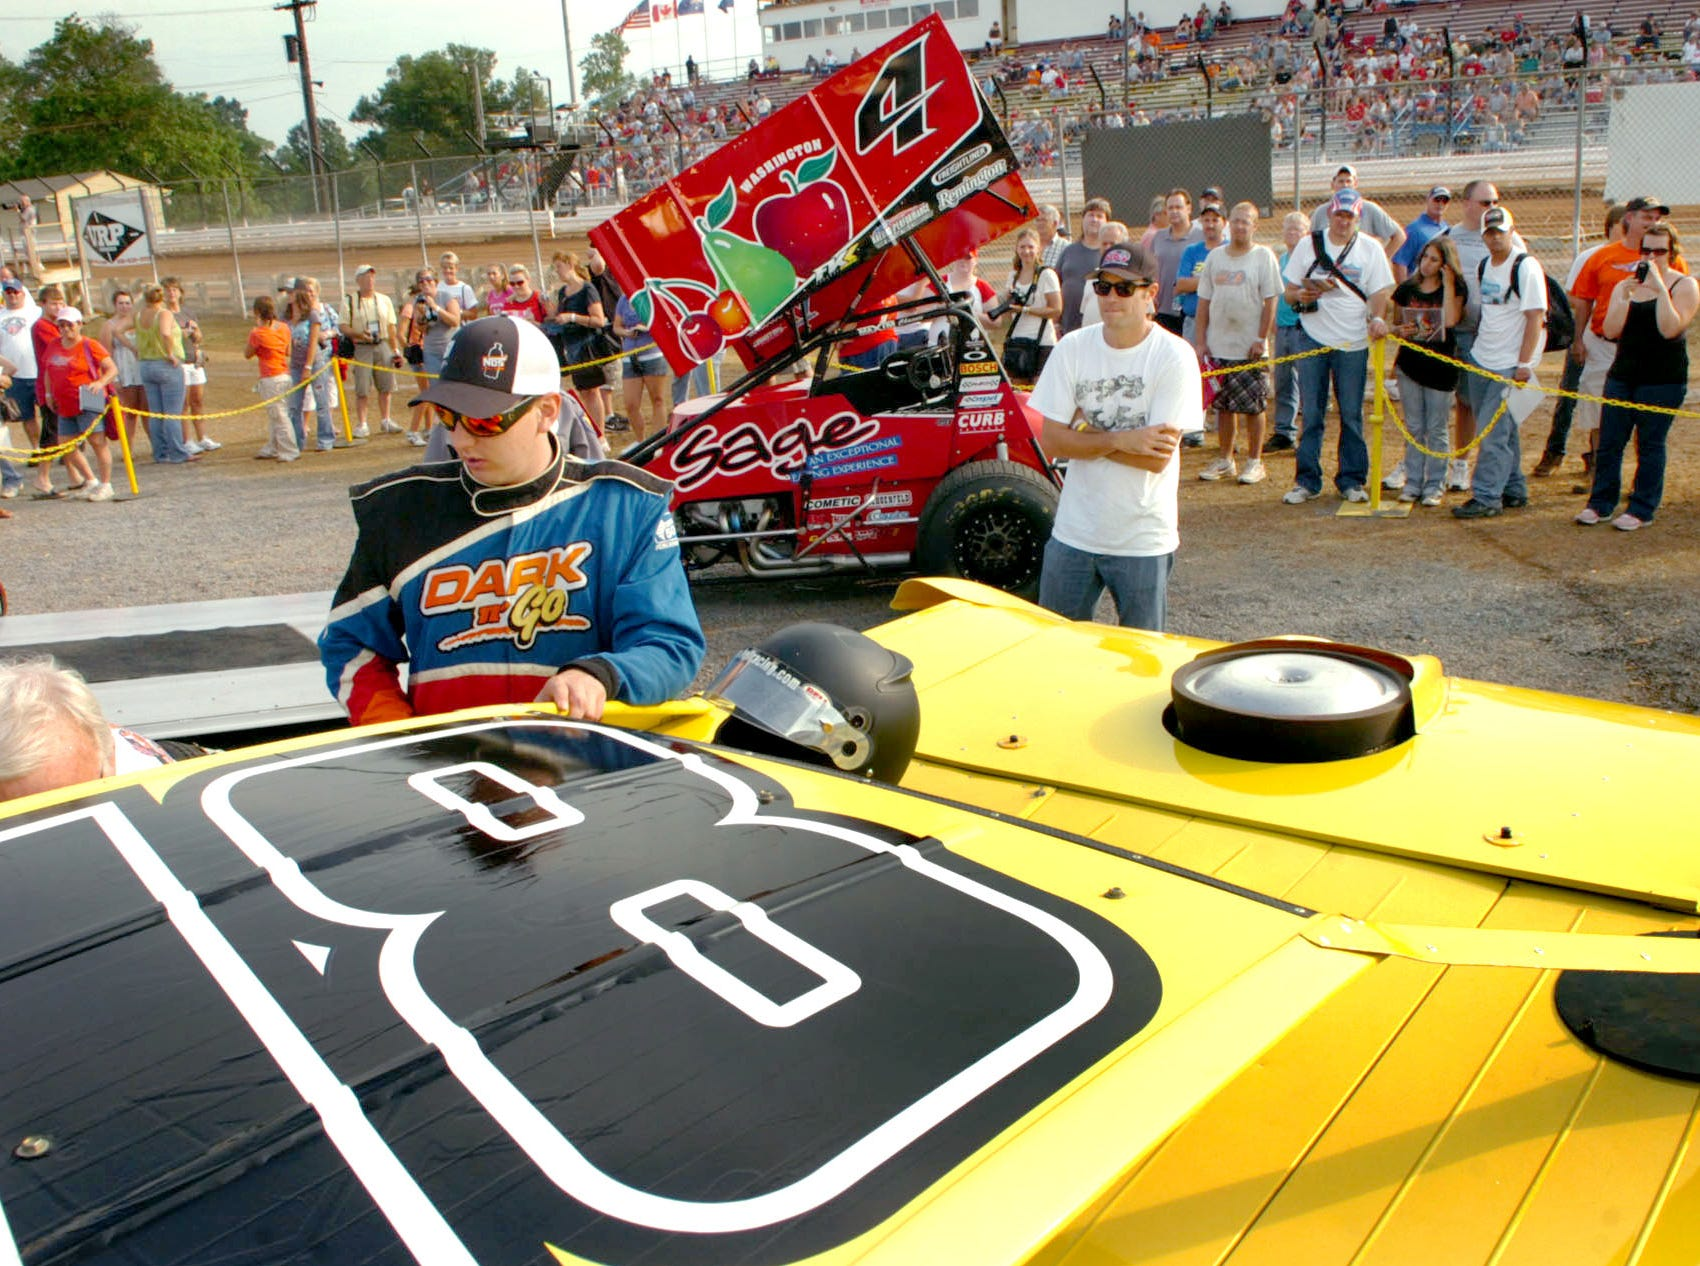 Kyle Busch talks with crew members prior to racing Thursday at Williams Grove in 2010. Busch's car drew a large crowd, as did Kasey Kahne's  No. 4 car behind.